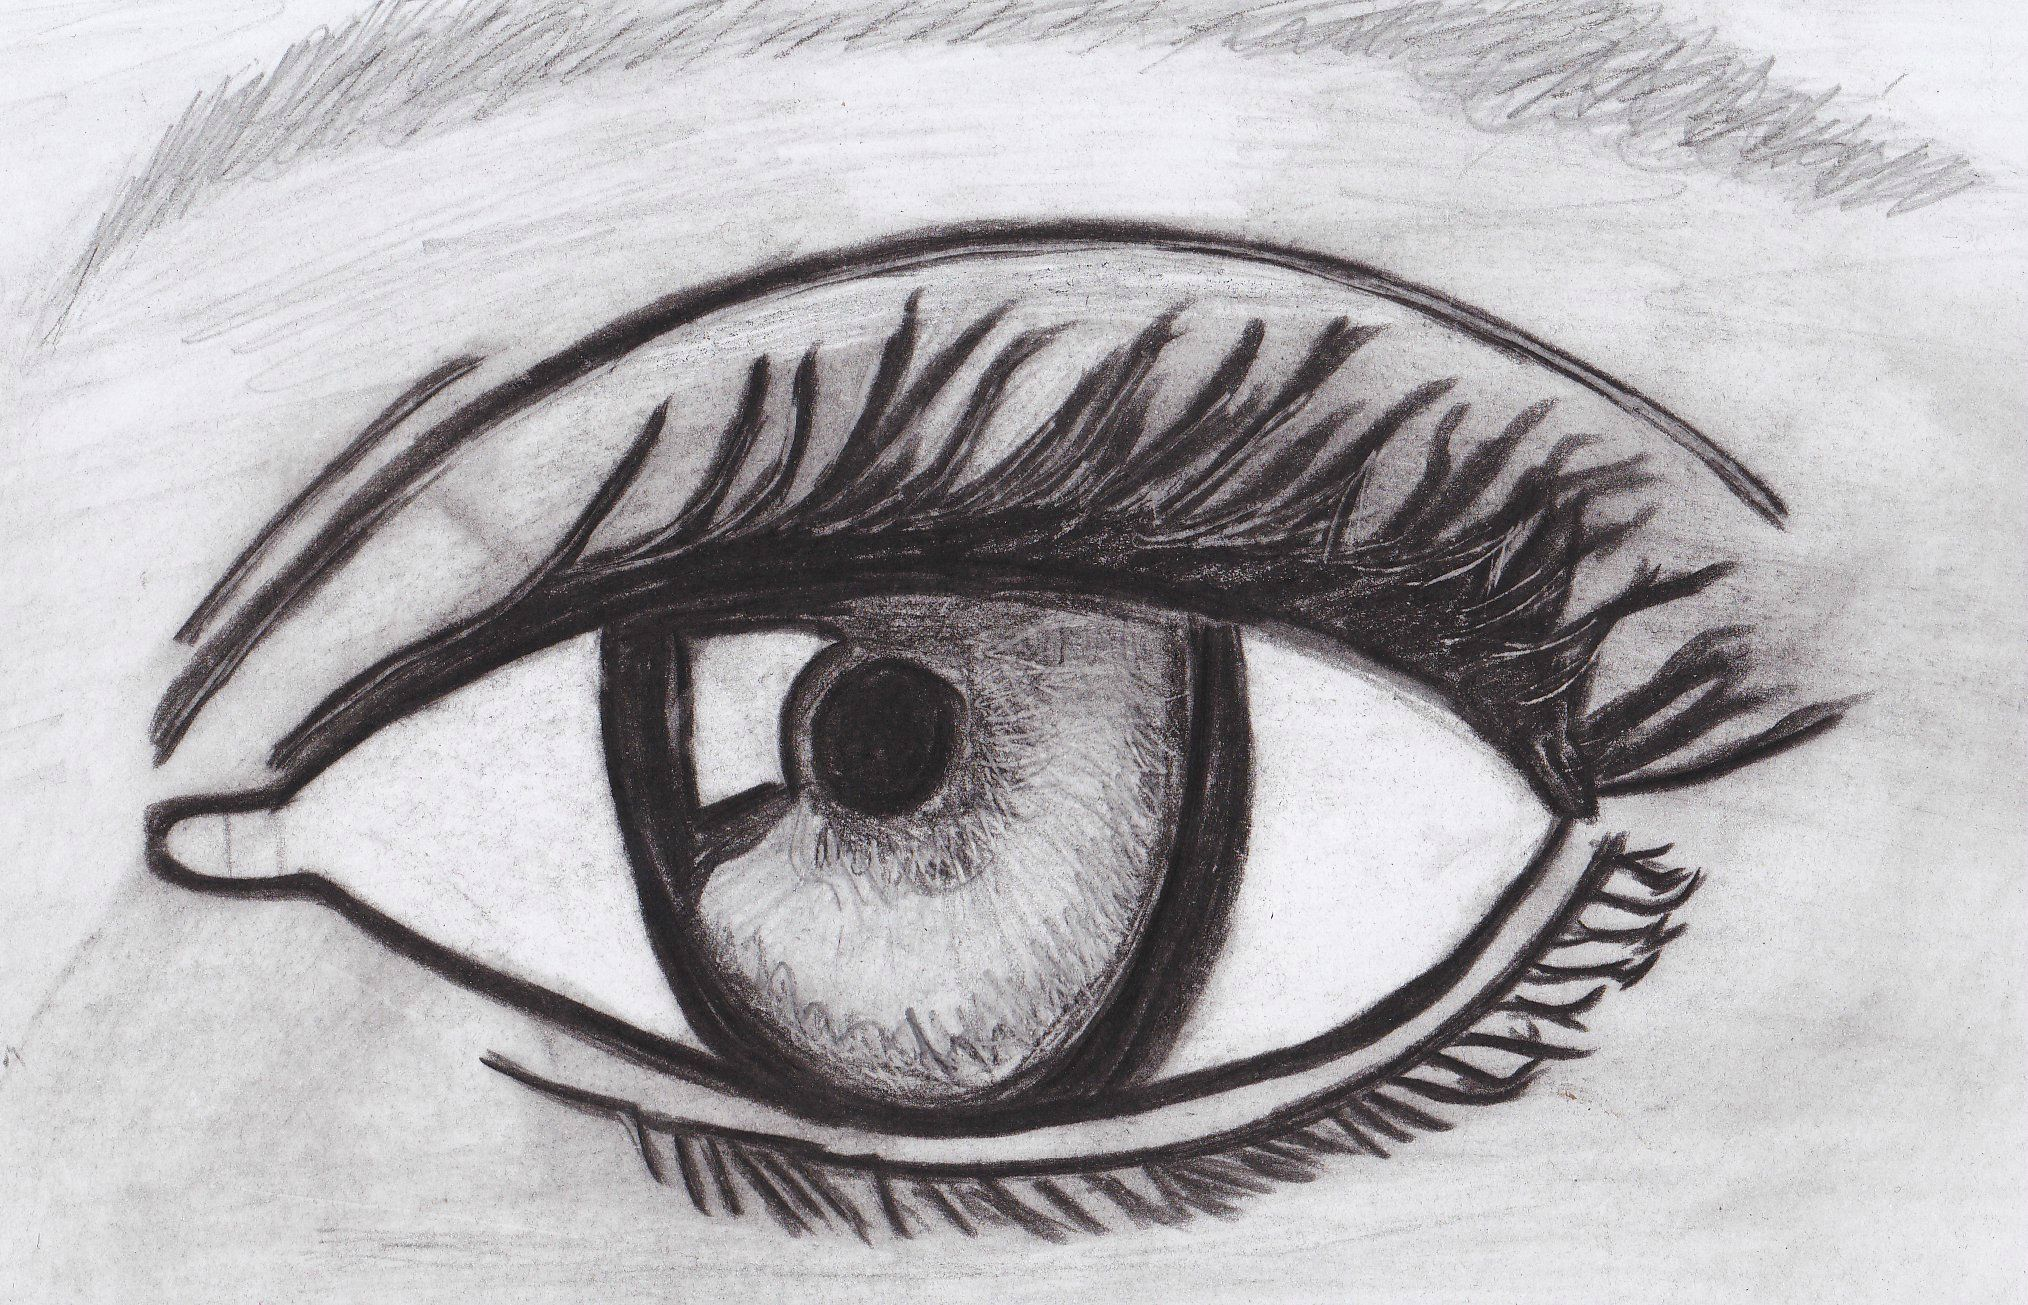 Marvelous Dessin Facile Et Beau 10 Comment Dessiner Un Nounours Eyes